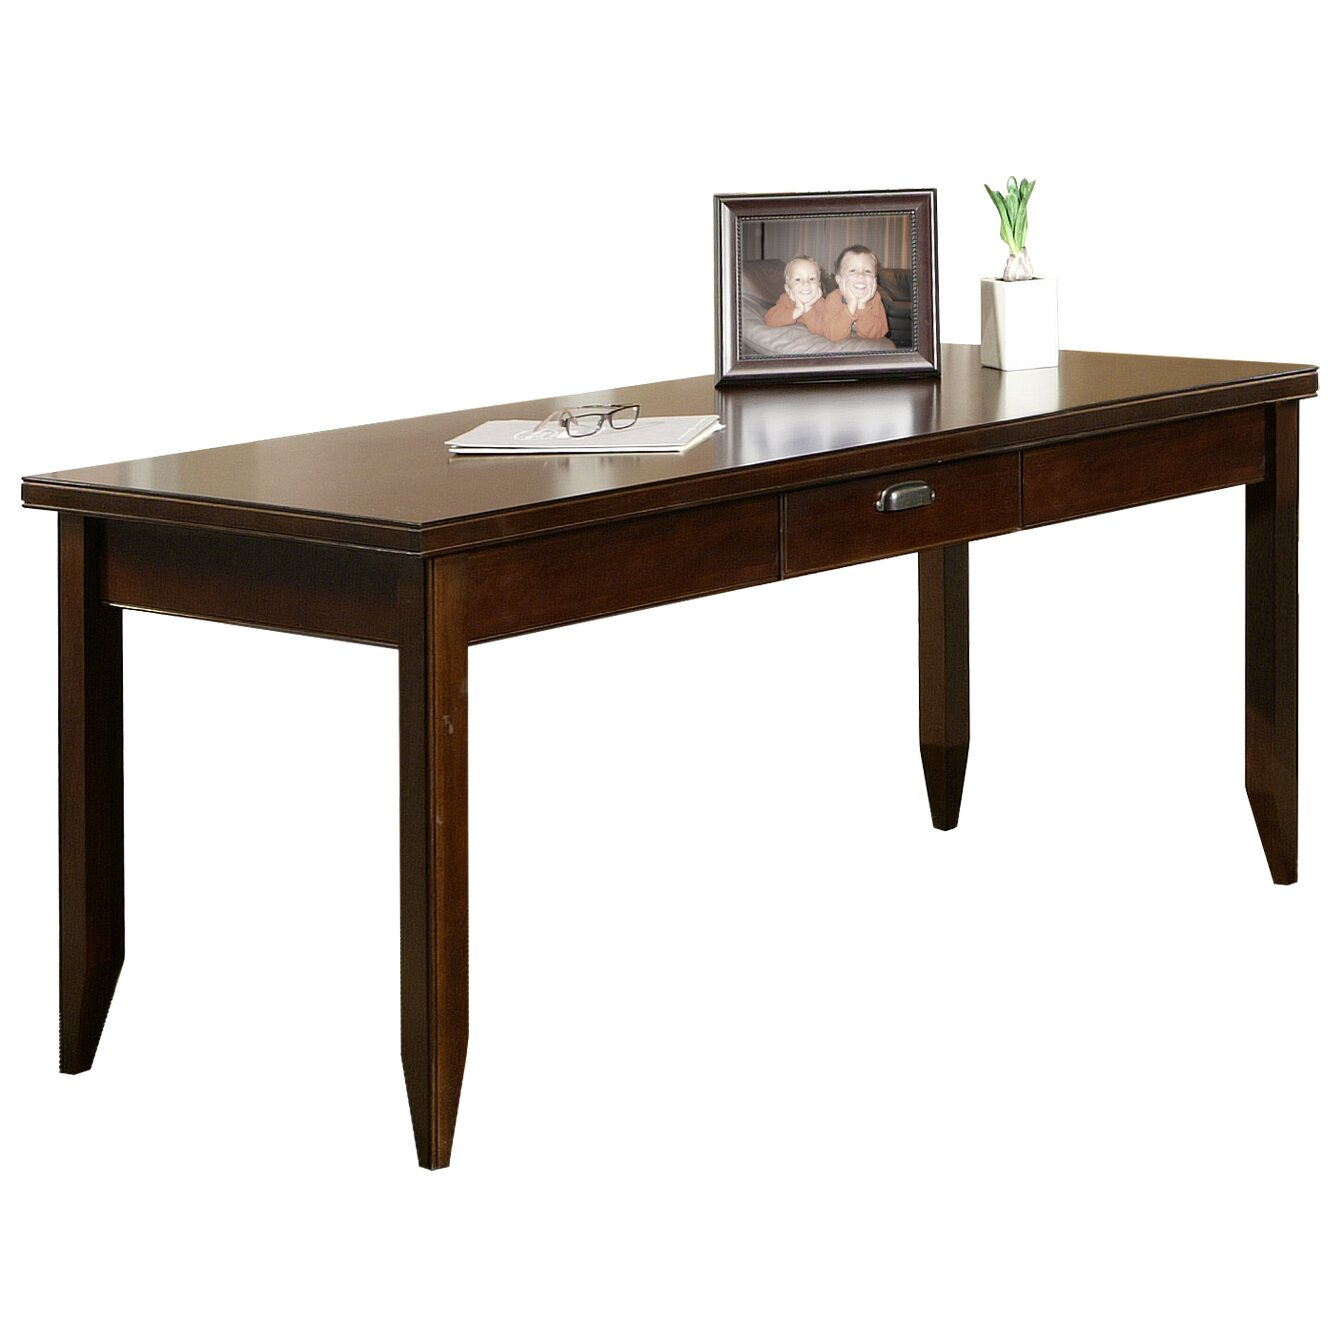 kathy ireland writing desk Kathy ireland office furniture collections kathy ireland worldwide, an international brand, was founded by former super model kathy ireland with the mission of providing simple, yet elegant solutions to the everyday challenges of a busy life.